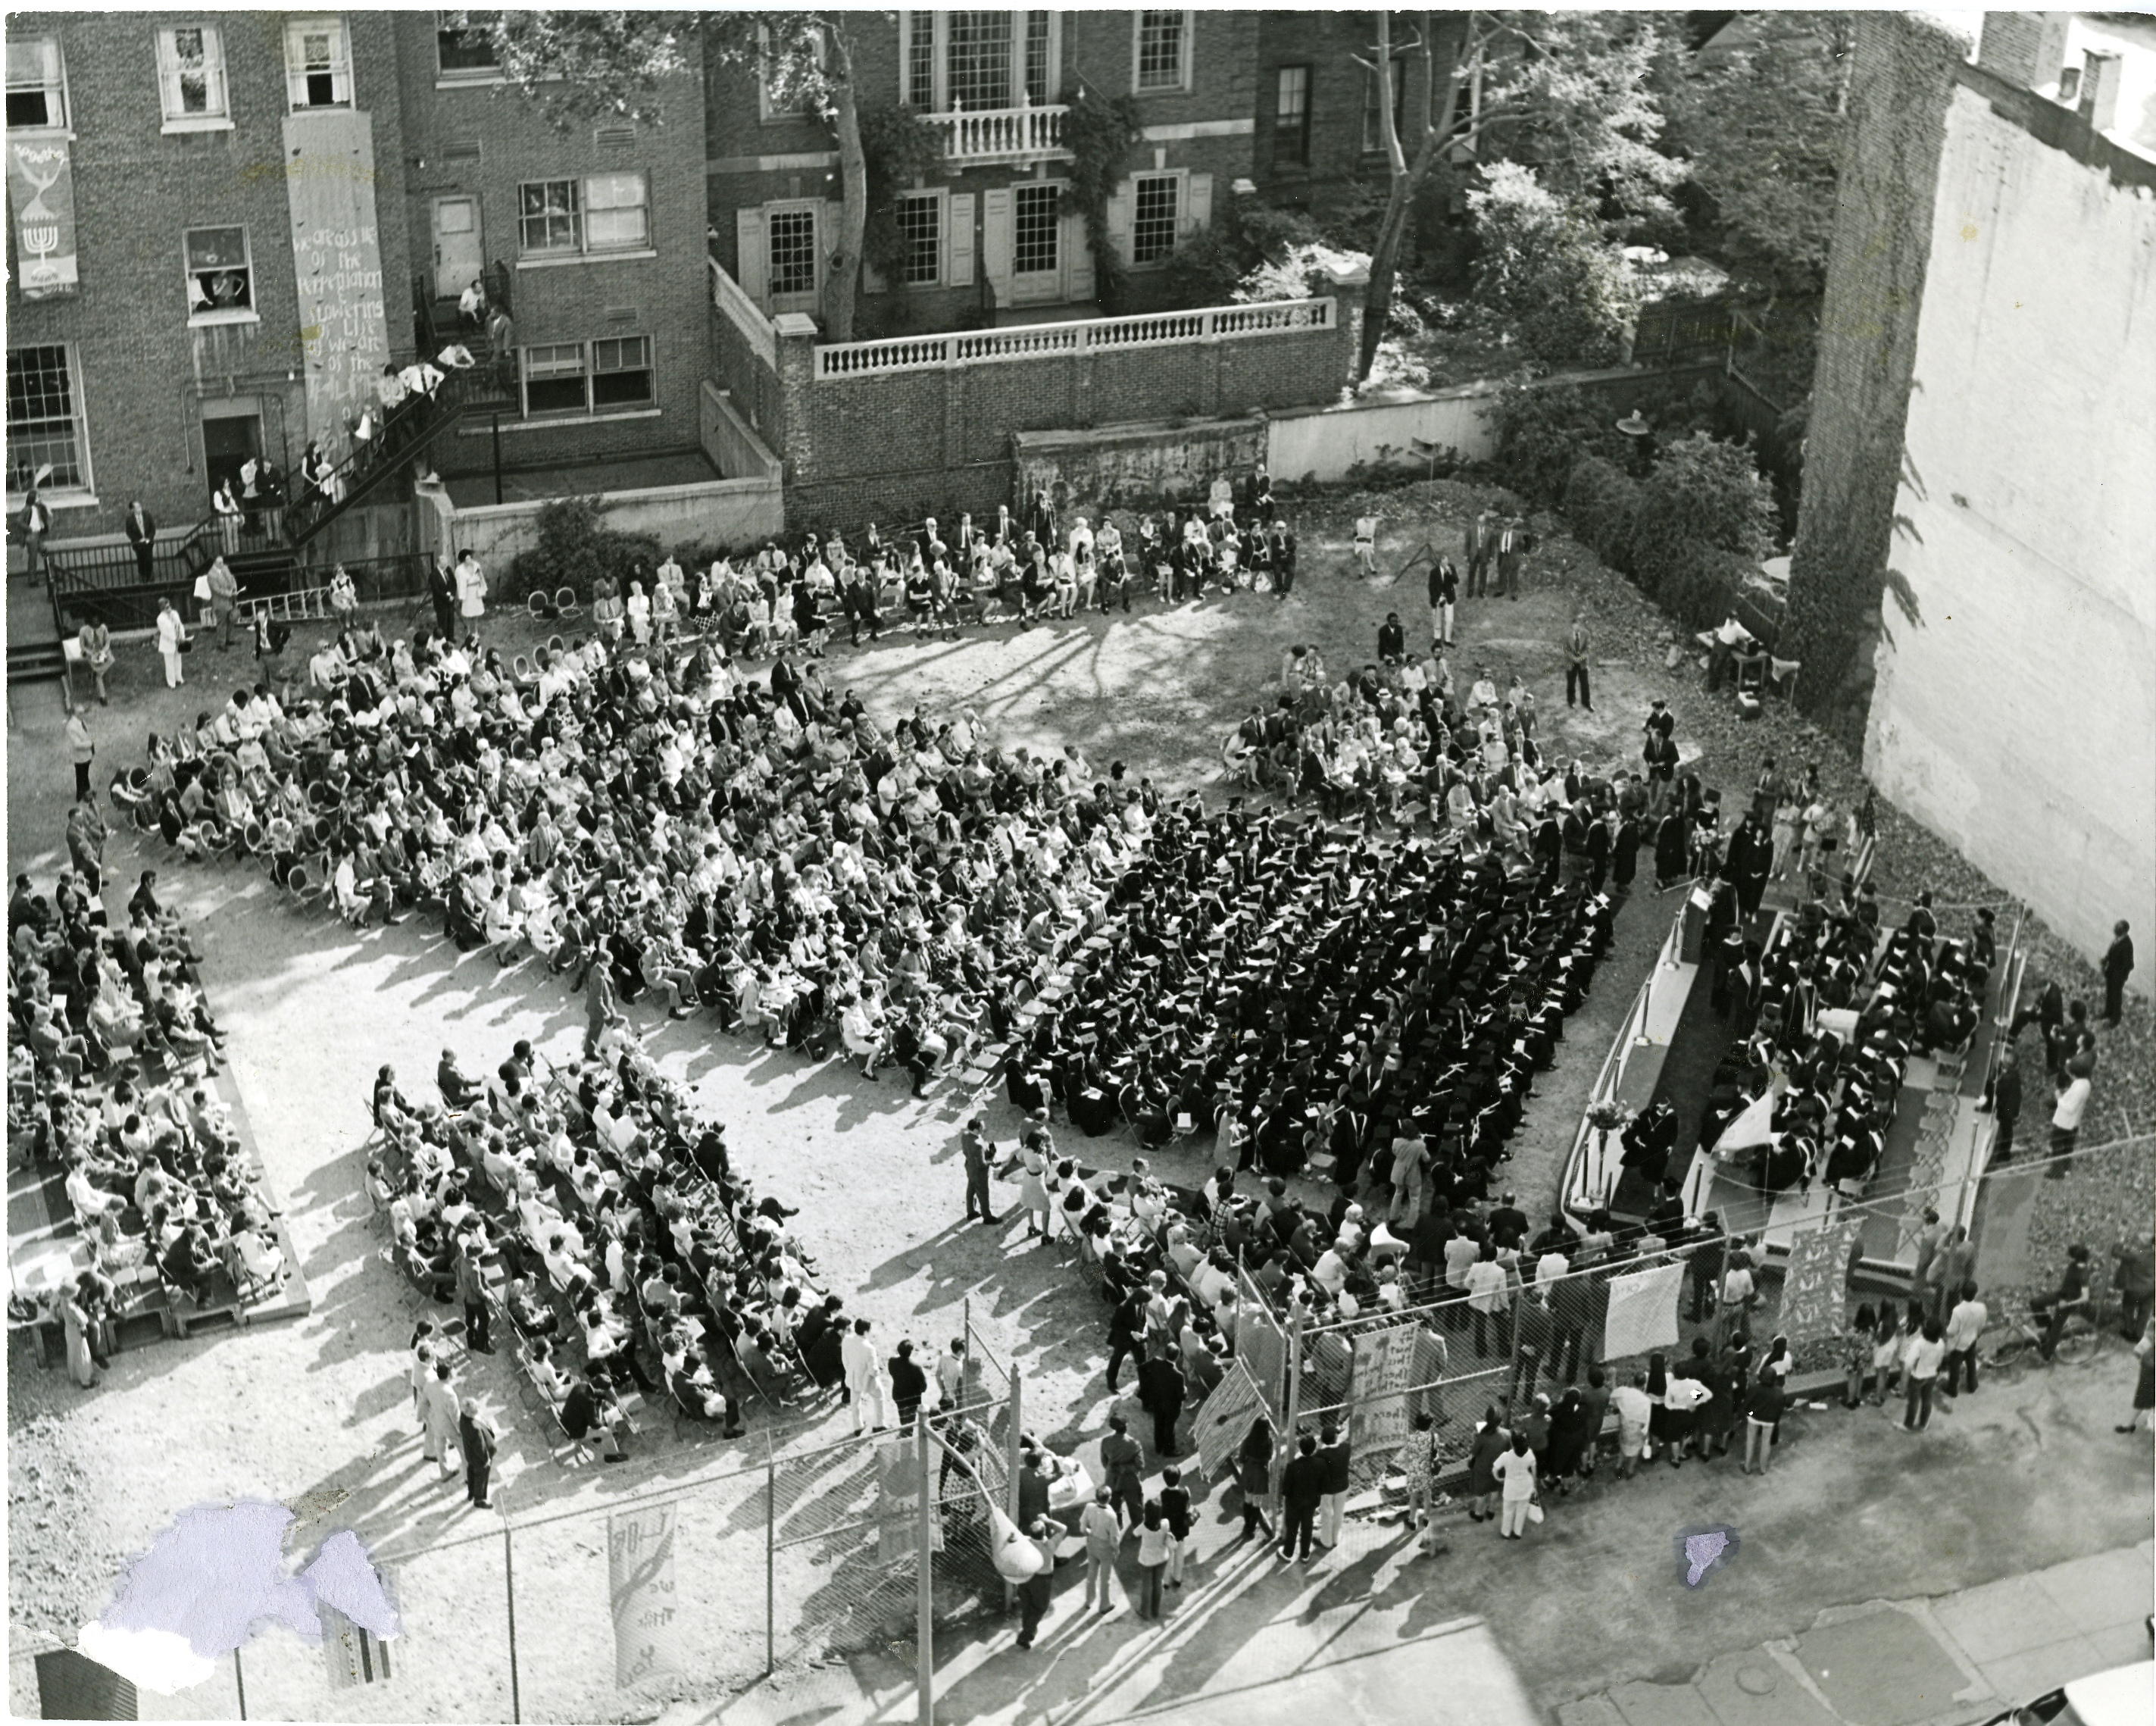 aerial view of 1972 commencement in lot where Nugent Building was erected.